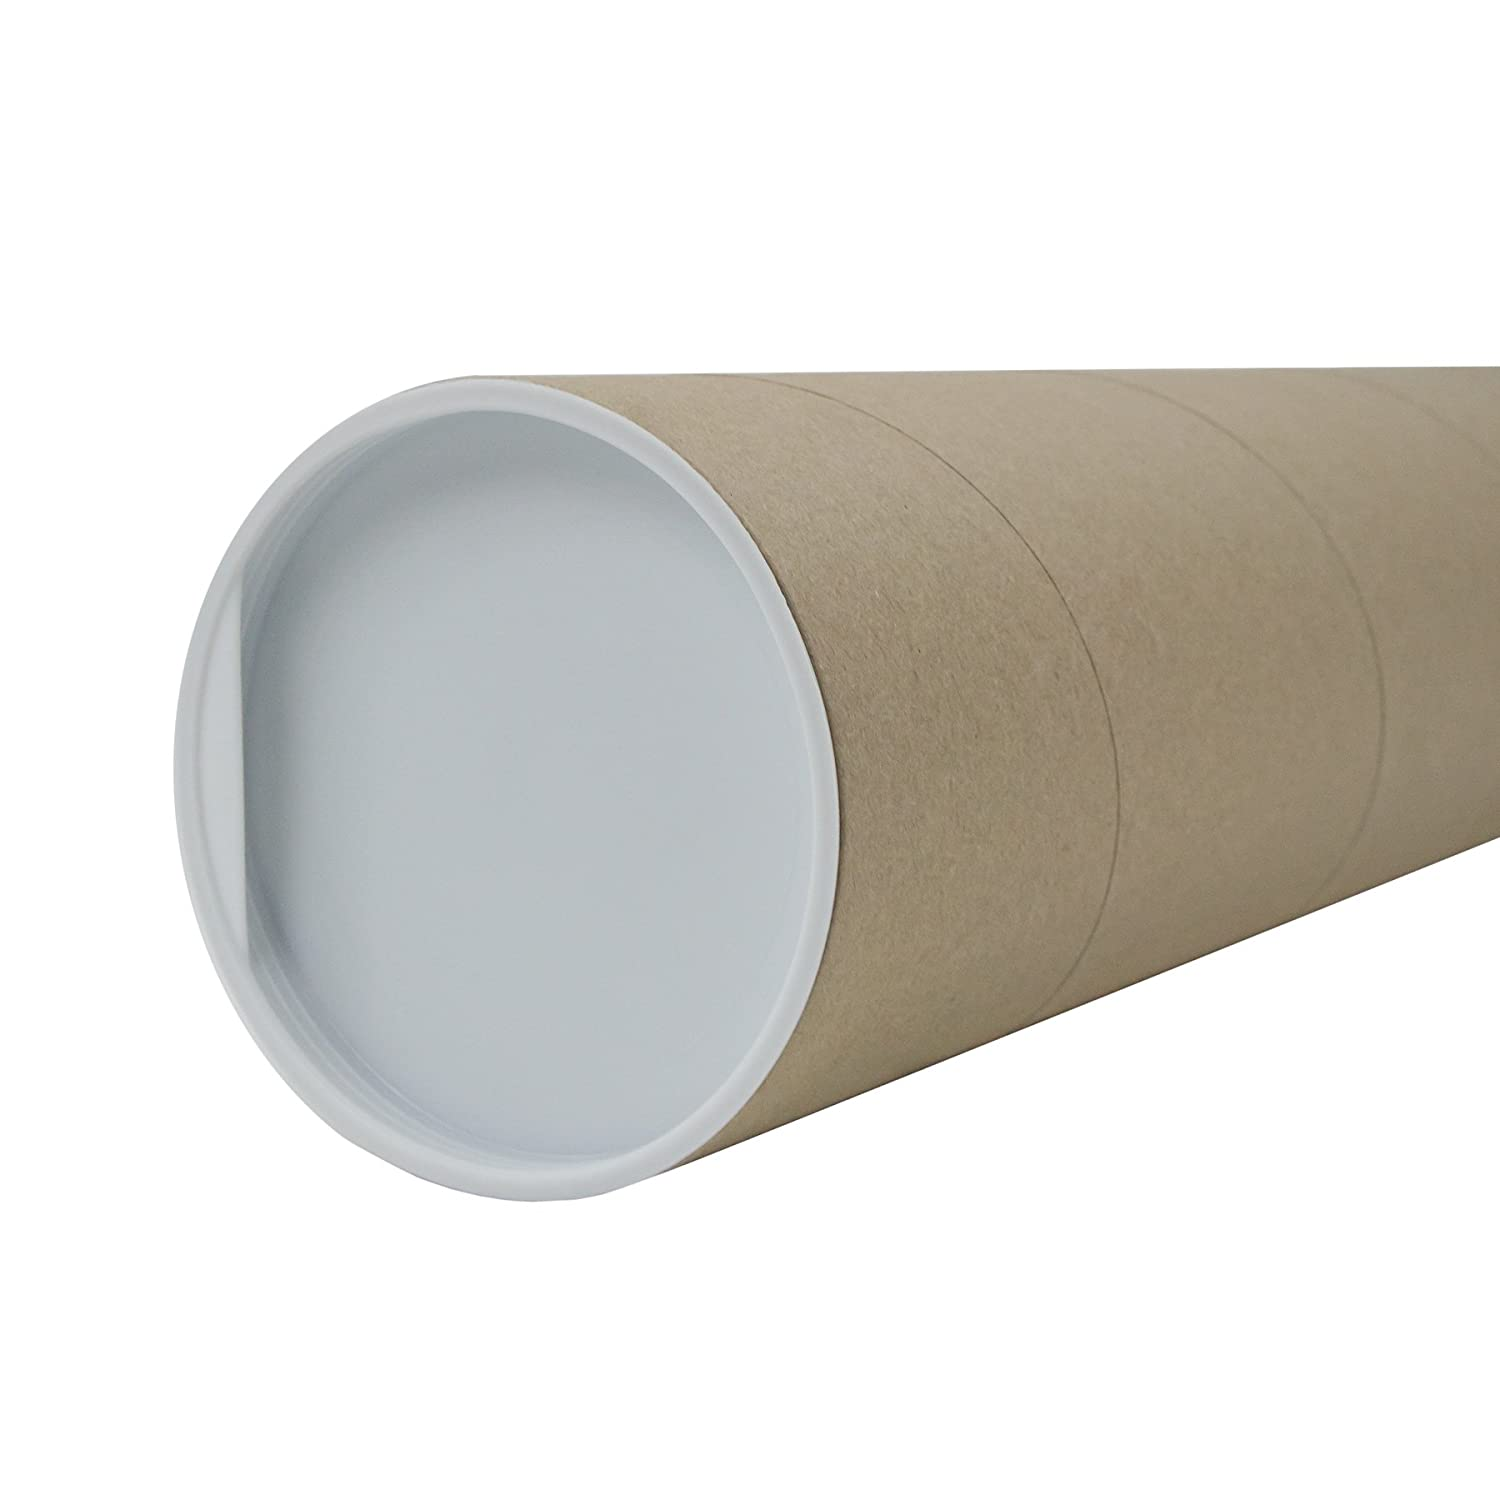 1 m shipping sleeve poster shipping tube 100 x 10 cm cardboard Itenga shipping roll and cover